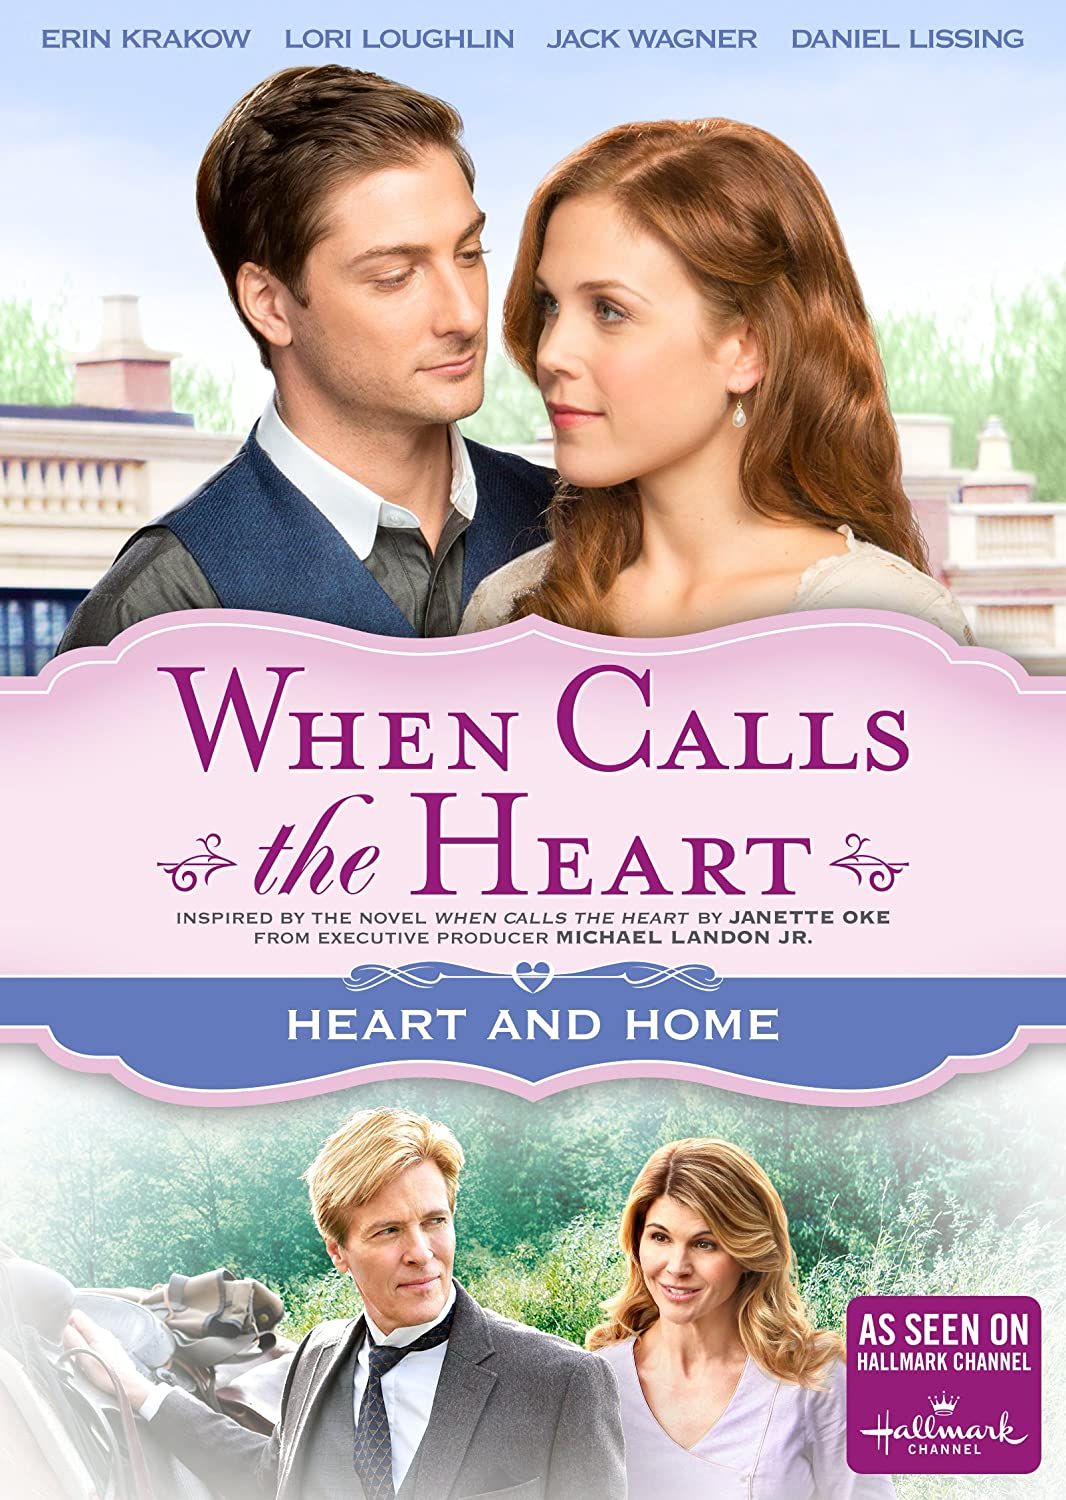 When Calls the Heart: Heart and Home - DVD Image